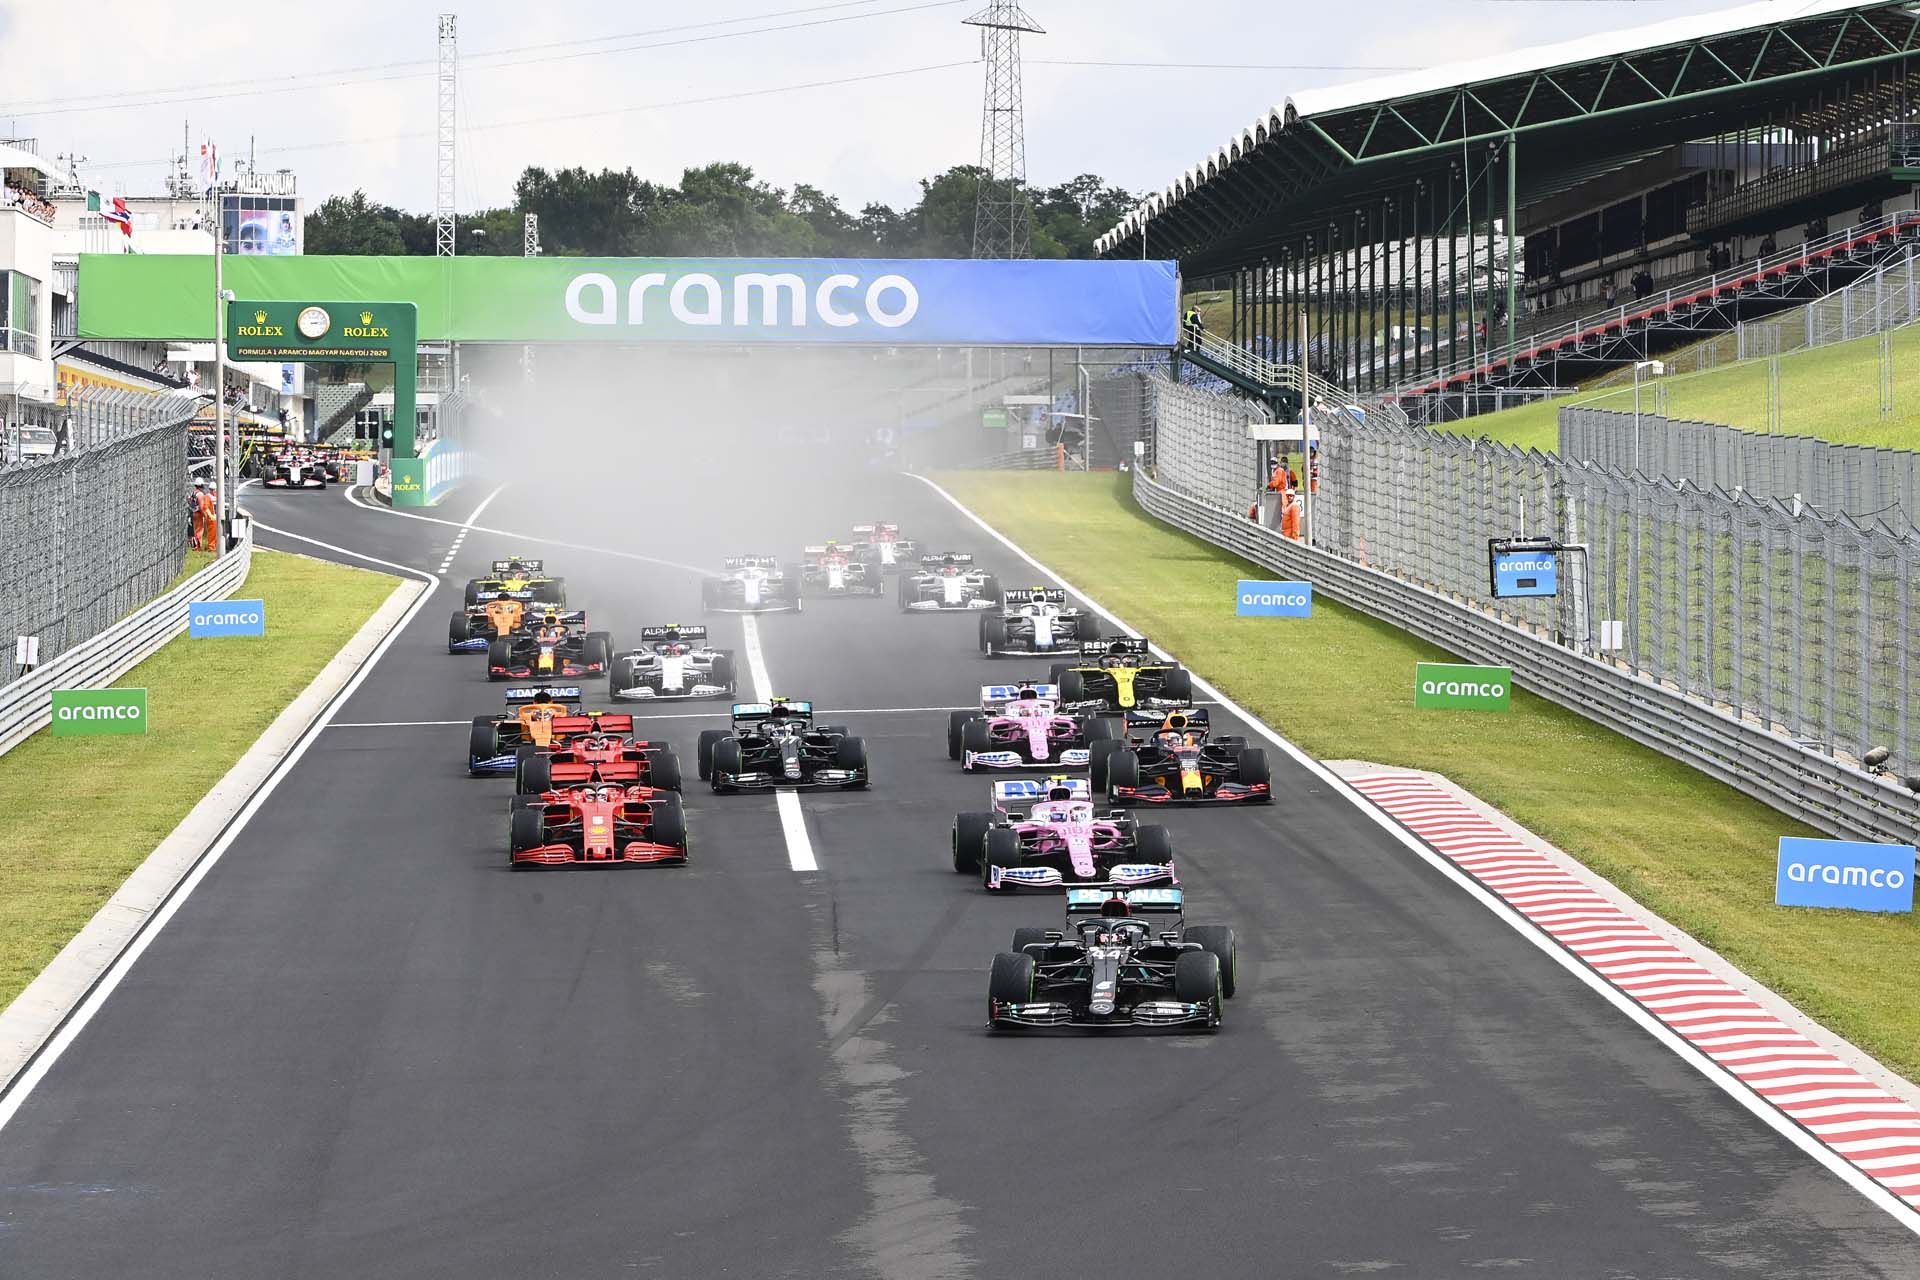 2020HungarianGP_Sunday_RacingP_GP2003_131258MS2_7028